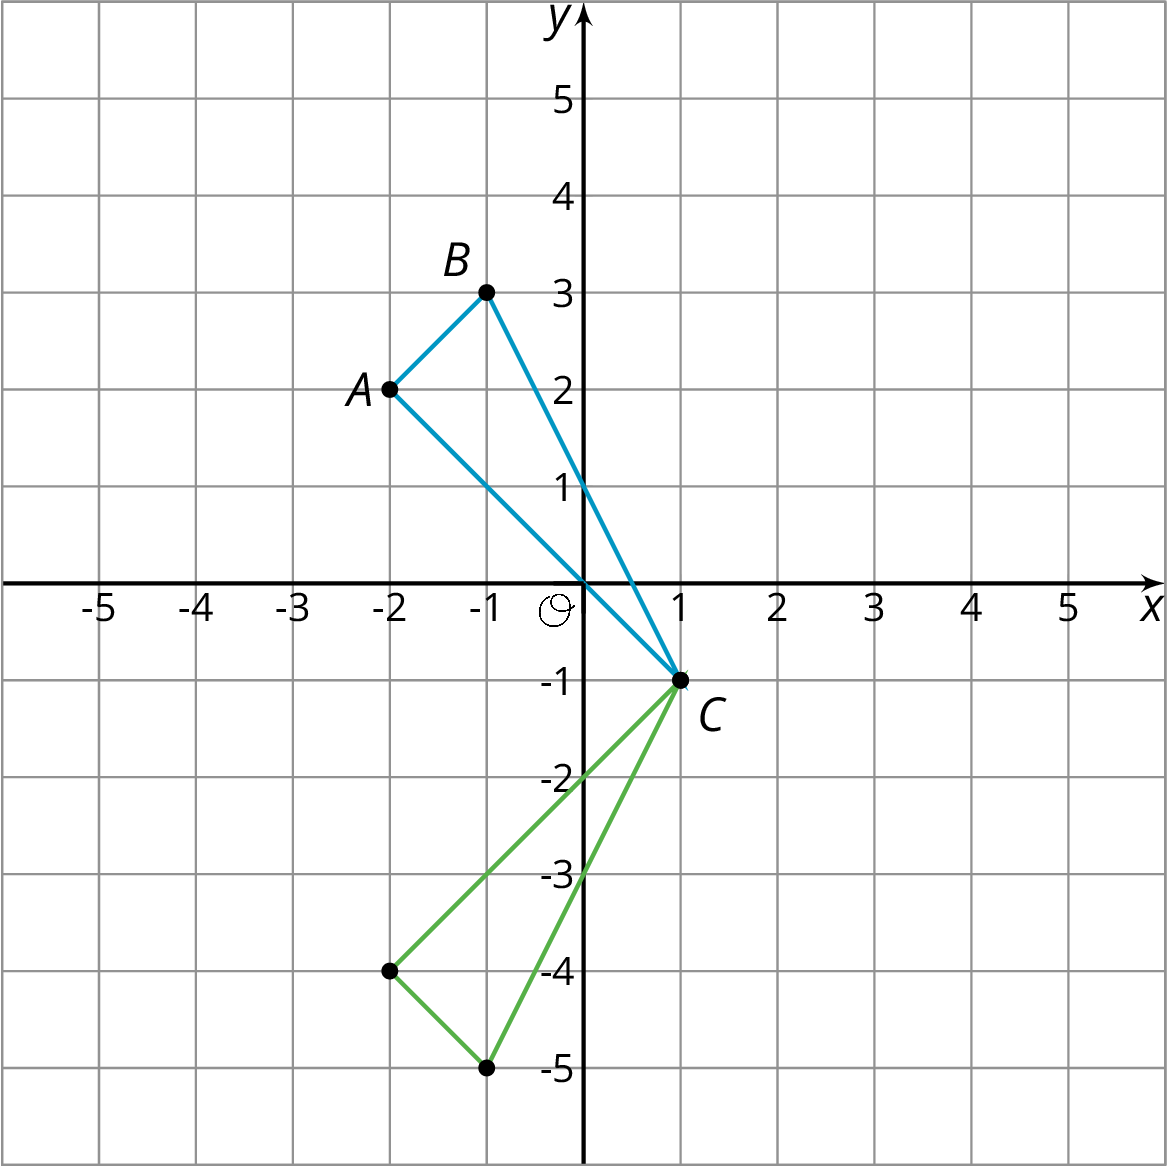 Triangle A B C on the x y plane with the origin labeled O. The numbers negative 5 through 5 appear on both the x axis and the y axis. Point A has the coordinates negative 2 comma 2. Point B has the coordinates negative 1 comma 3. Point C has the coordinates 1 comma negative 1.  A second triangle is drawn on the x y plane and shares the point C. The second triangle has the points with following coordinates: 1 comma negative 1, negative 1 comma negative 5, and negative 2 comma negative 4.